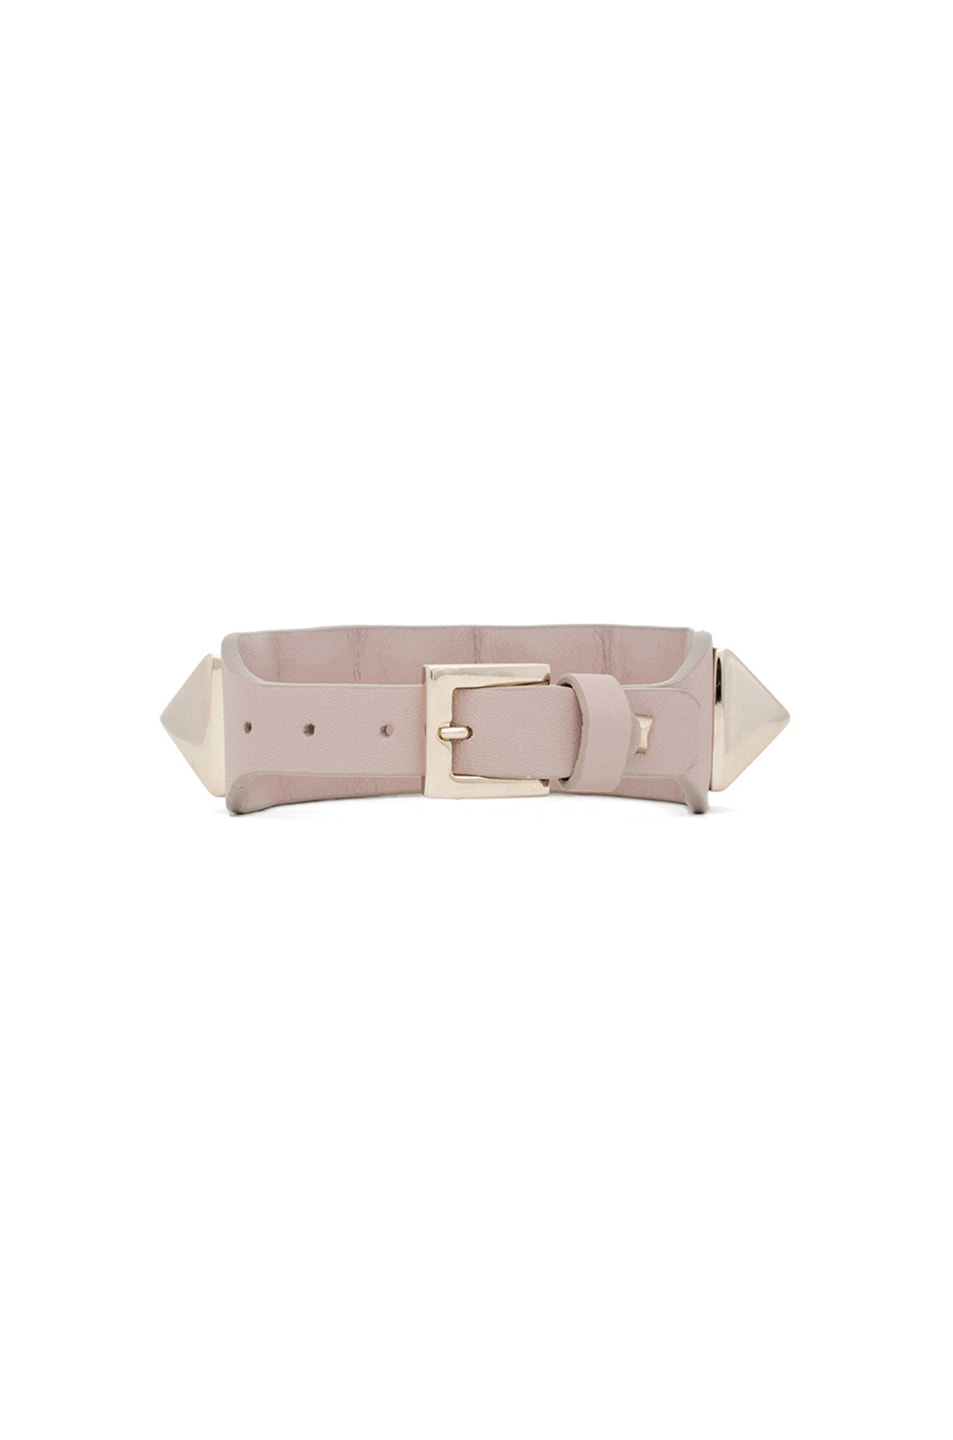 Image 3 of Valentino Medium Rockstud Va Va Voom Leather Bracelet in Poudre